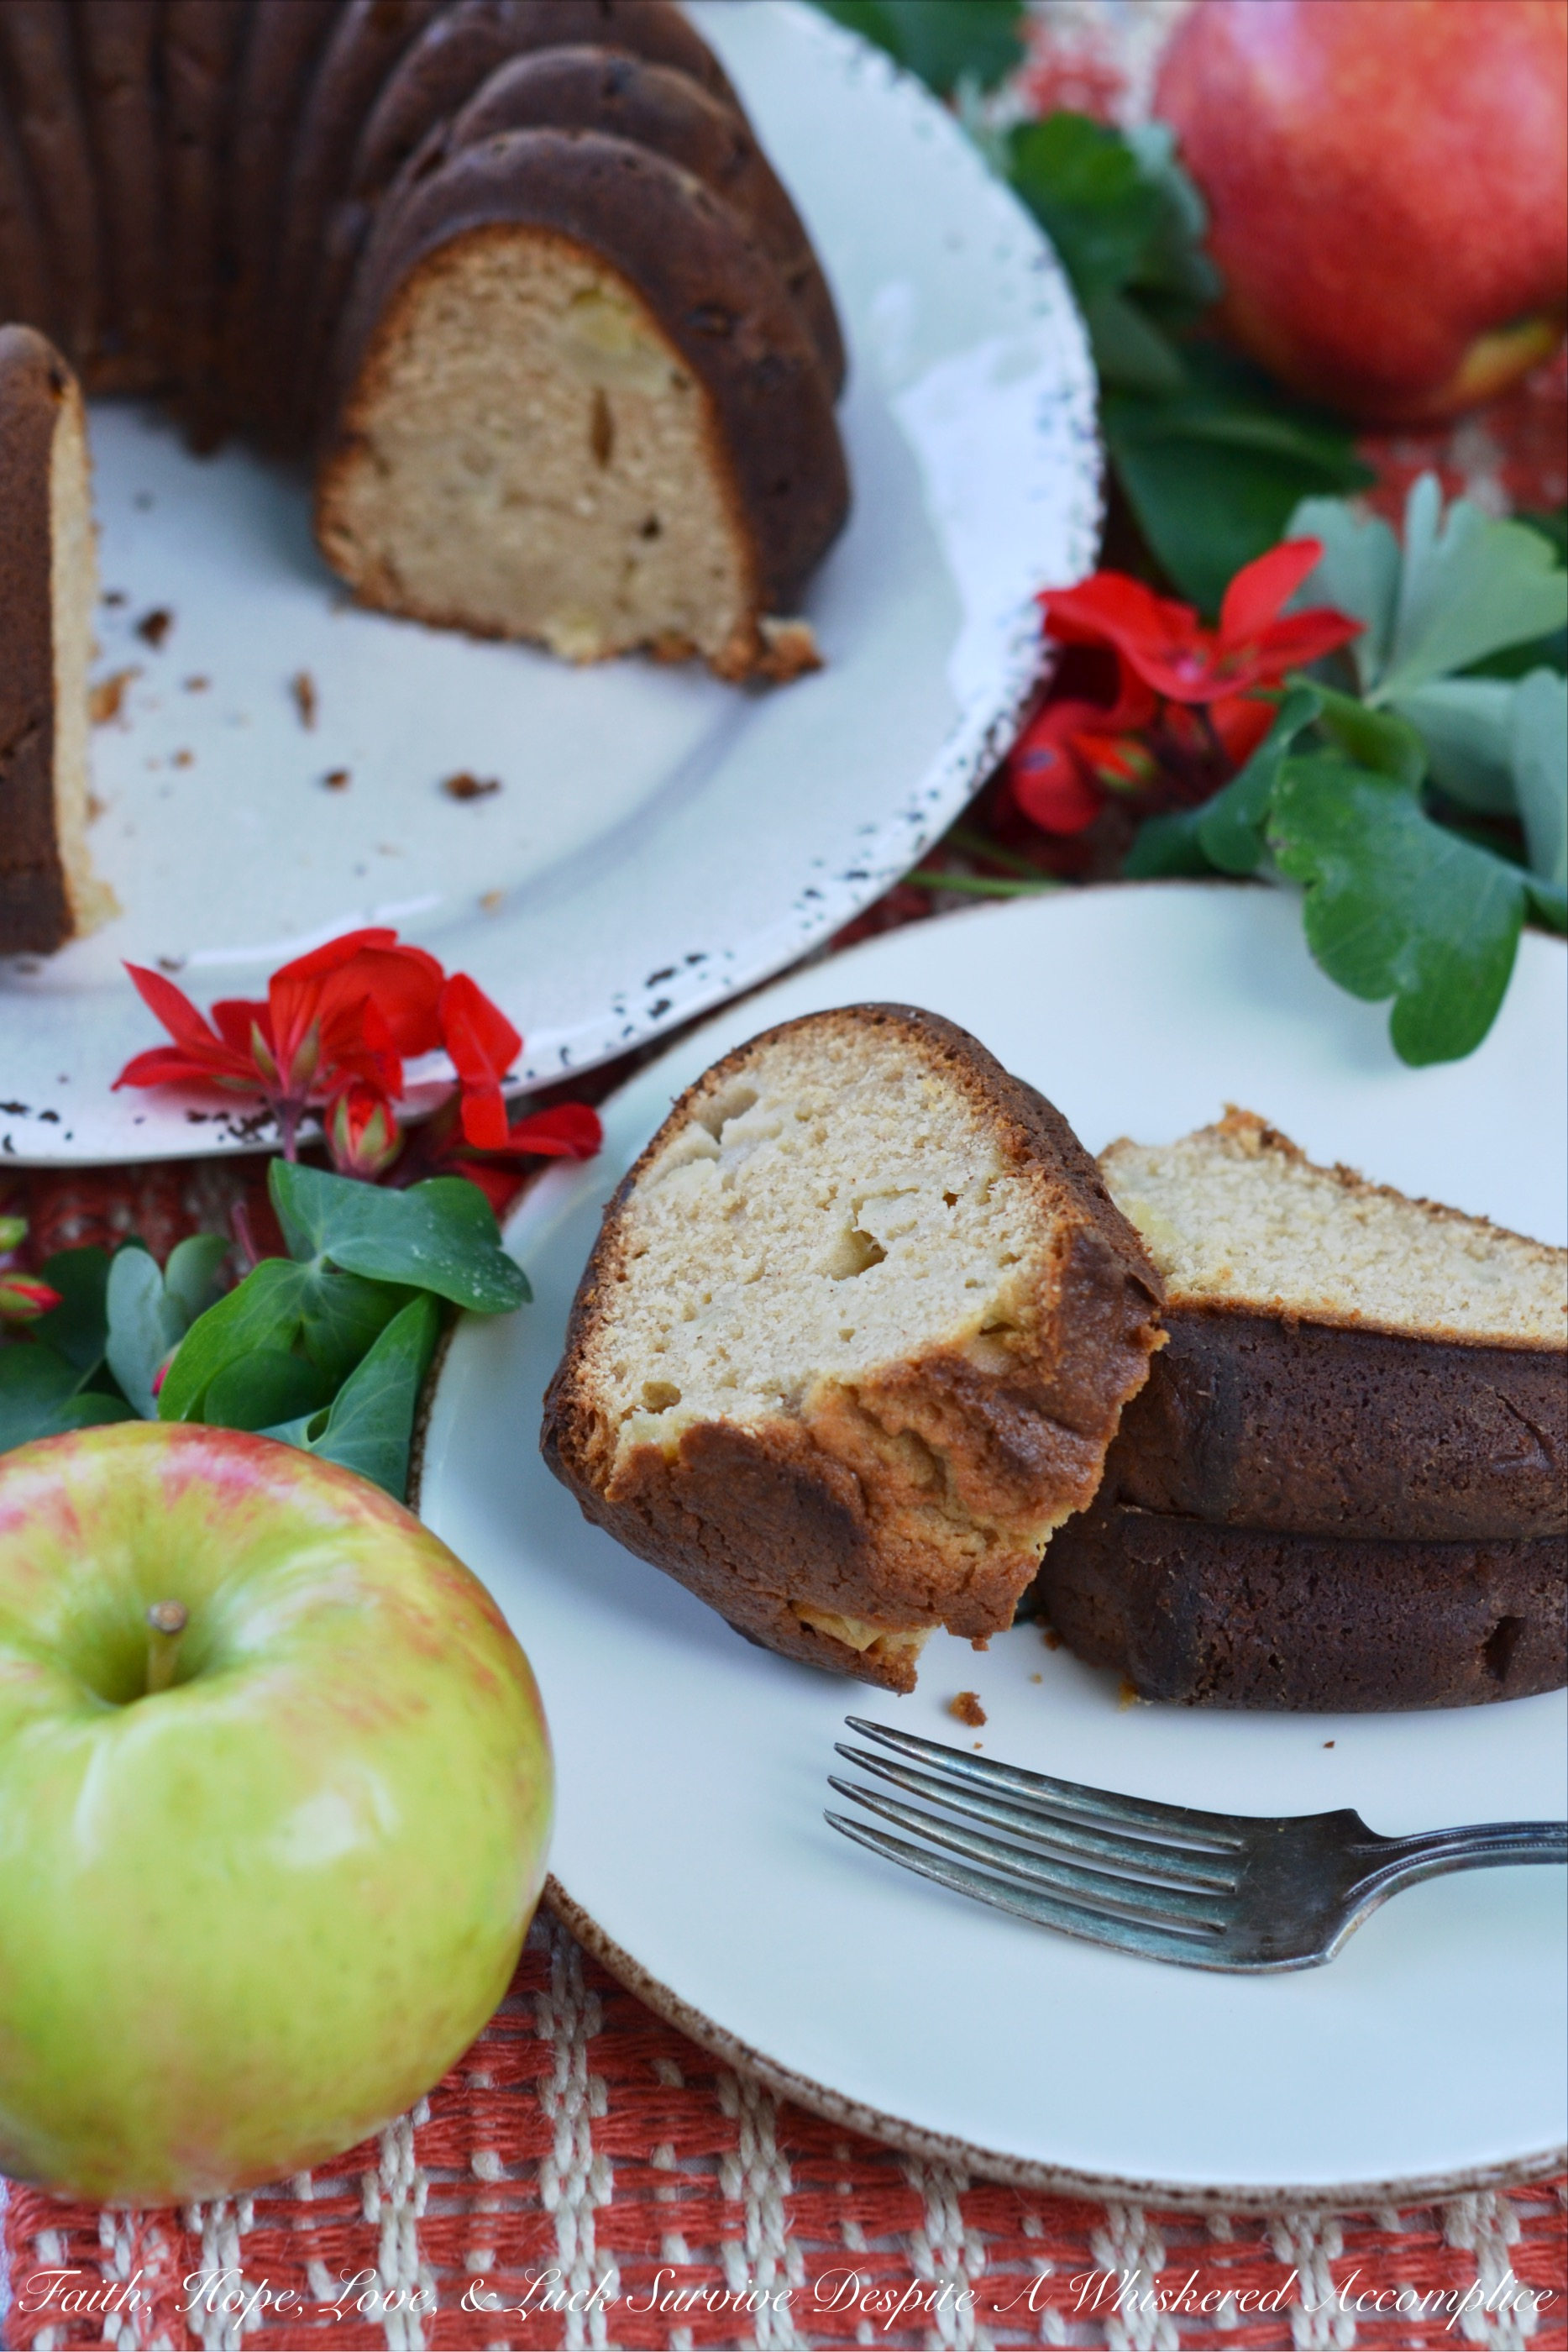 Autumn Honey Apple Bake & Slice Bundt Cake